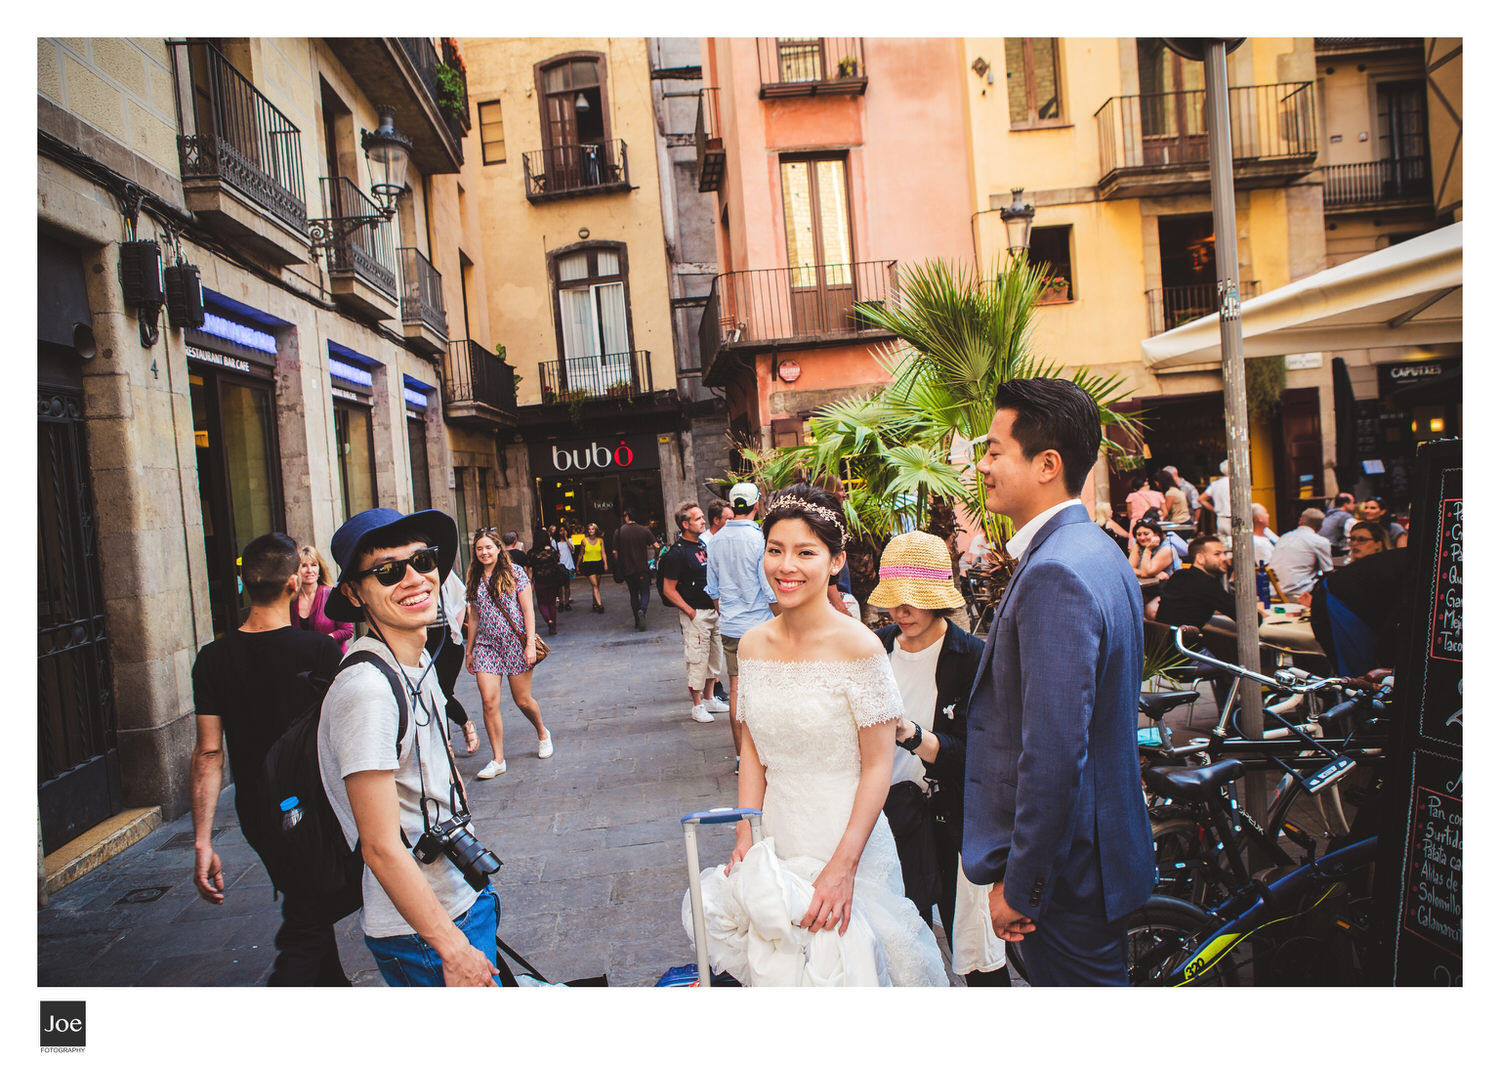 joe-fotography-34-barcelona-pre-wedding-linda-colin.jpg